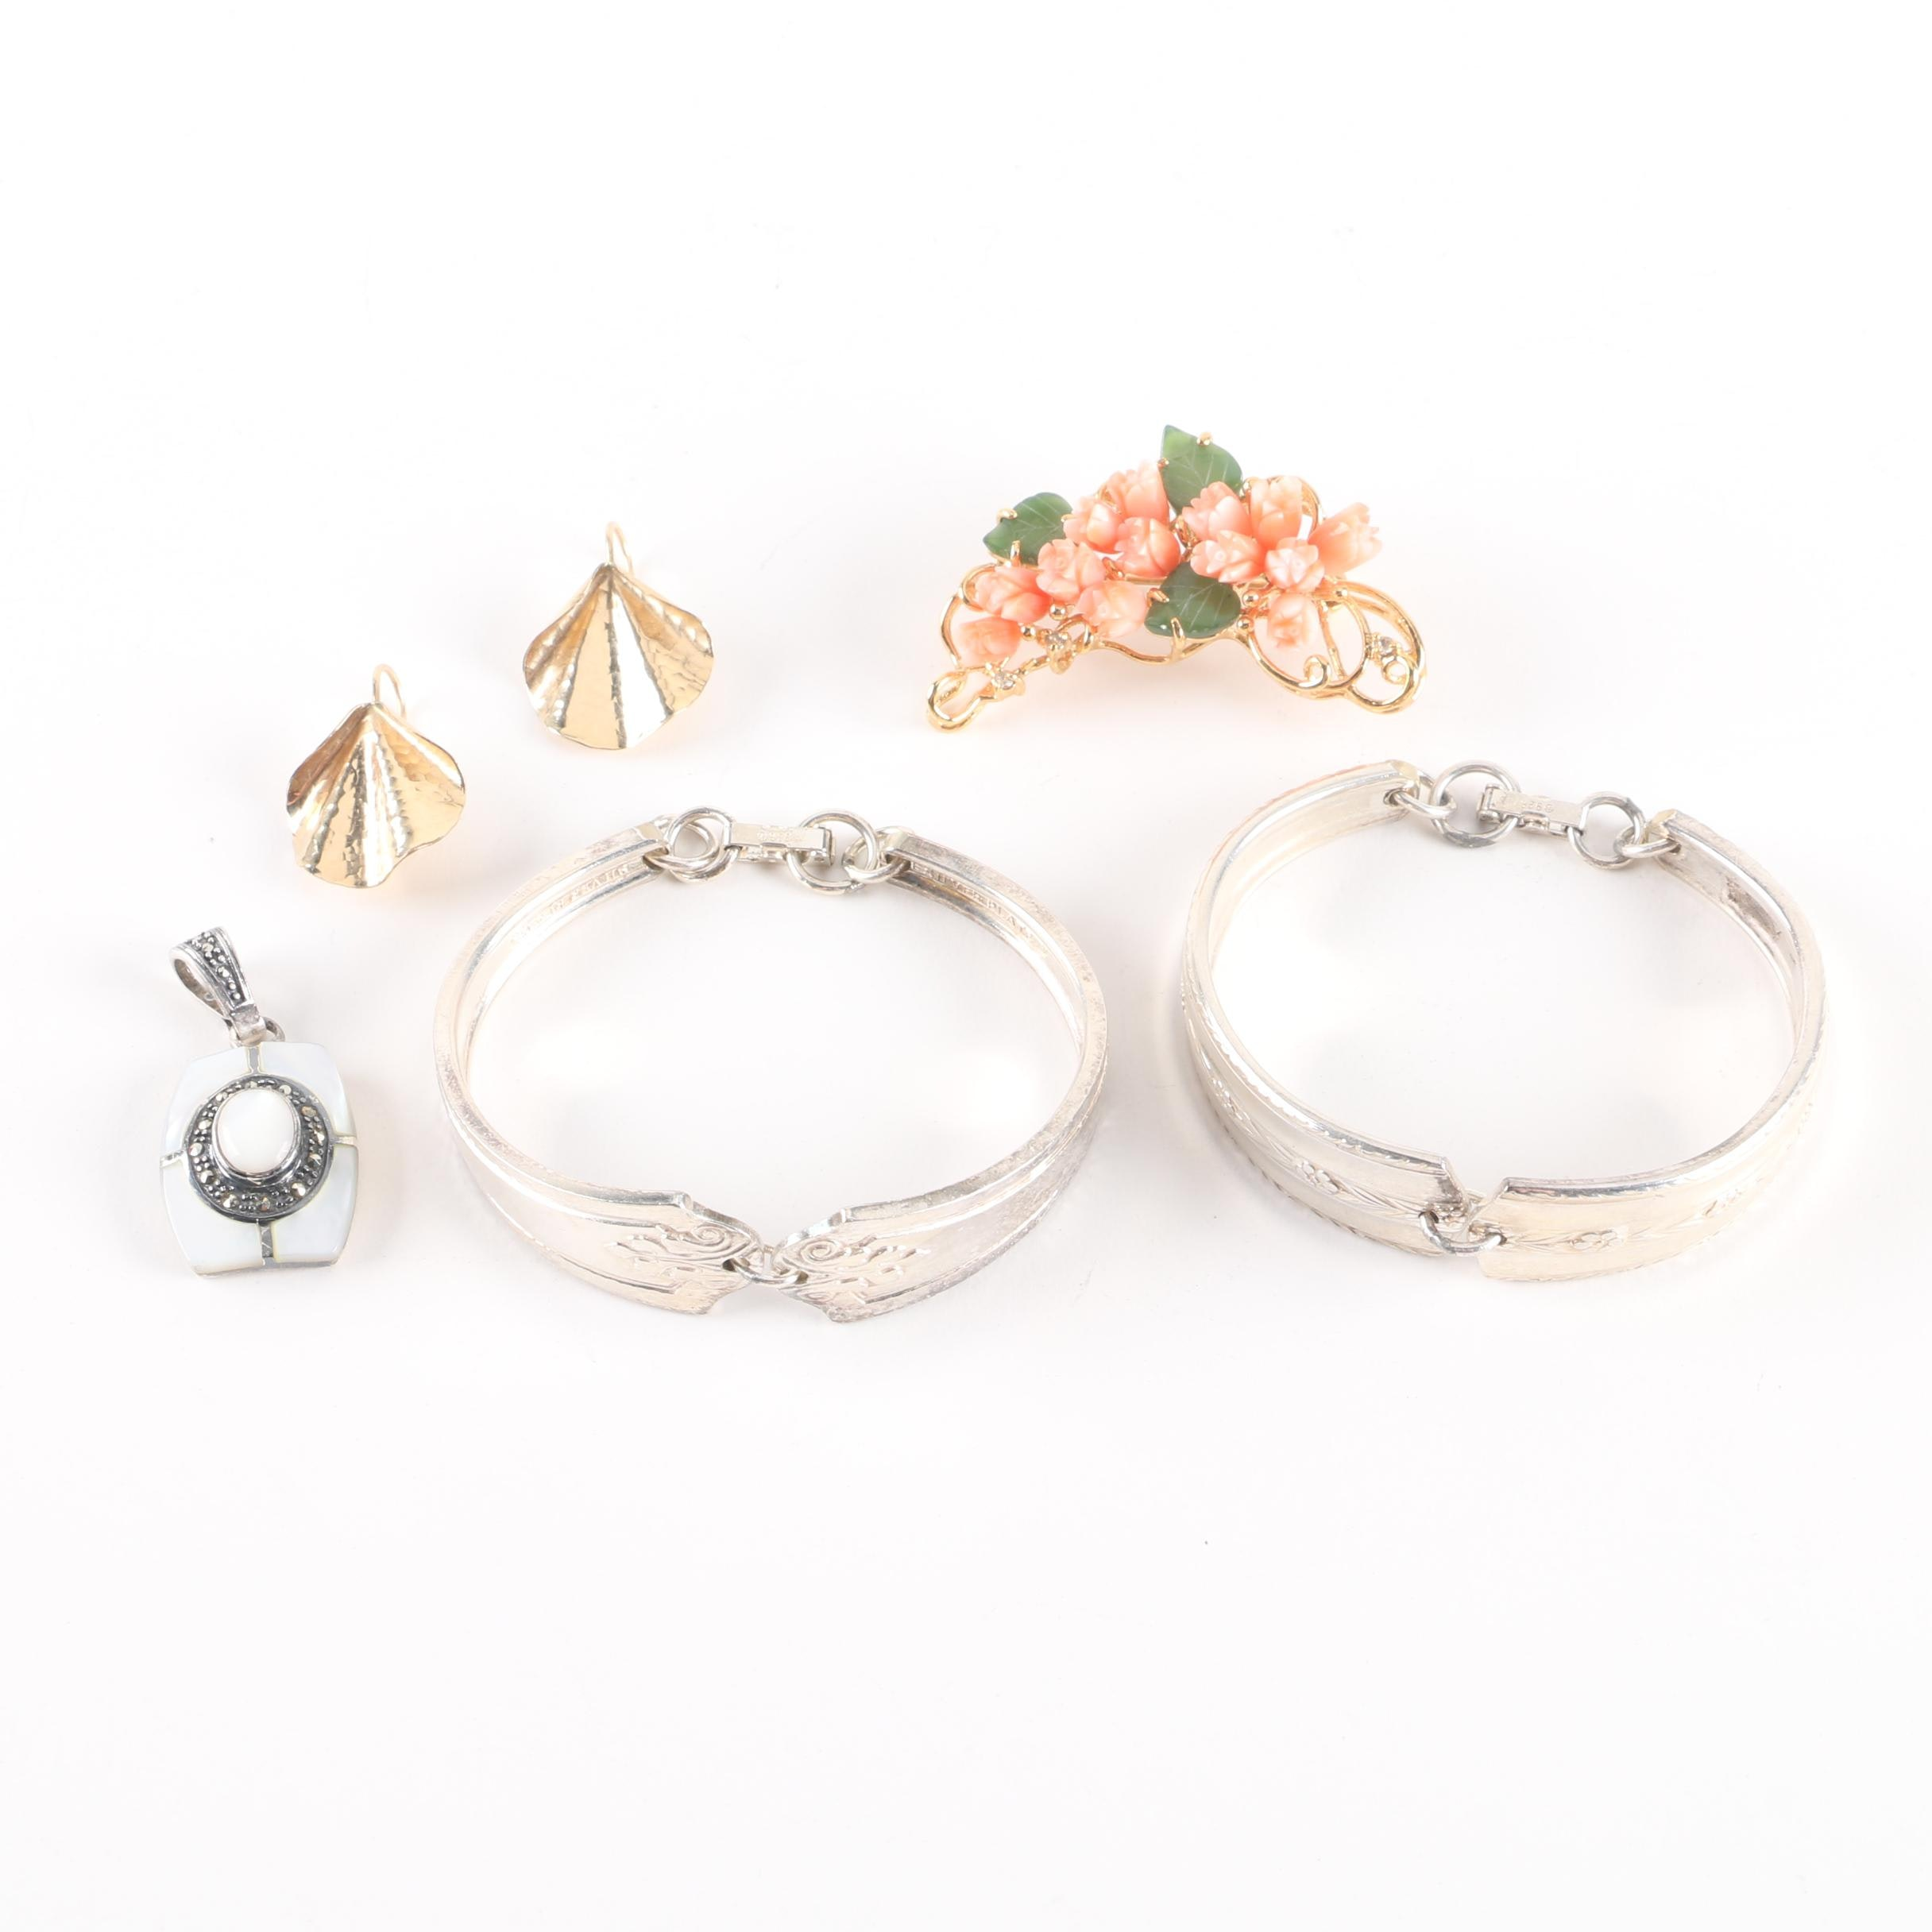 Gold and Silver Tone Gemstone Jewelry Assortment Including Sterling Silver